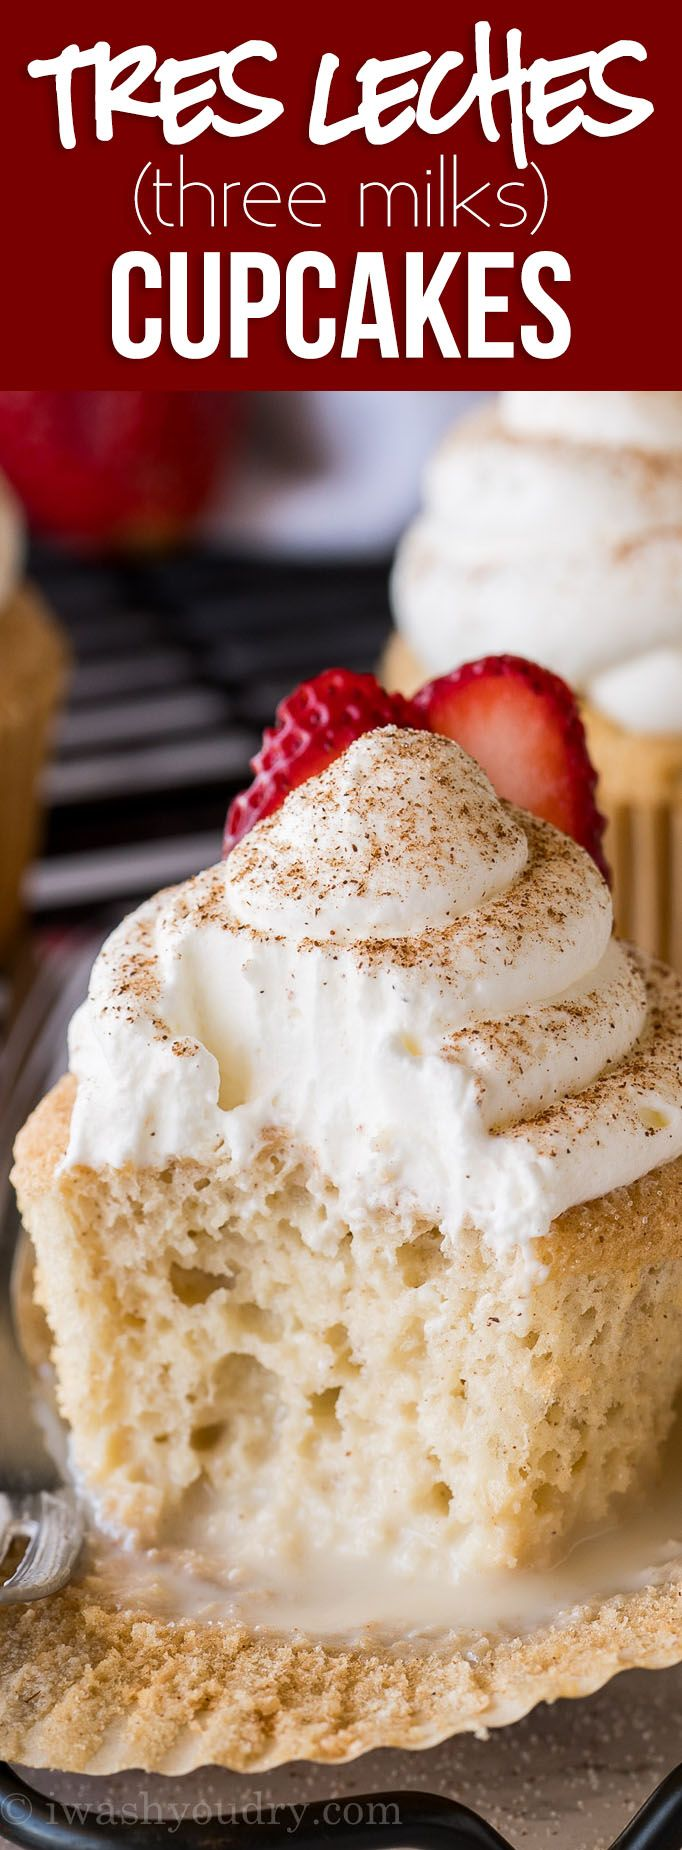 MIND BLOWING Tres Leches CUPCAKES!! This super easy Mexican inspired dessert is perfect for parties! So delicious! via @iwashyoudry